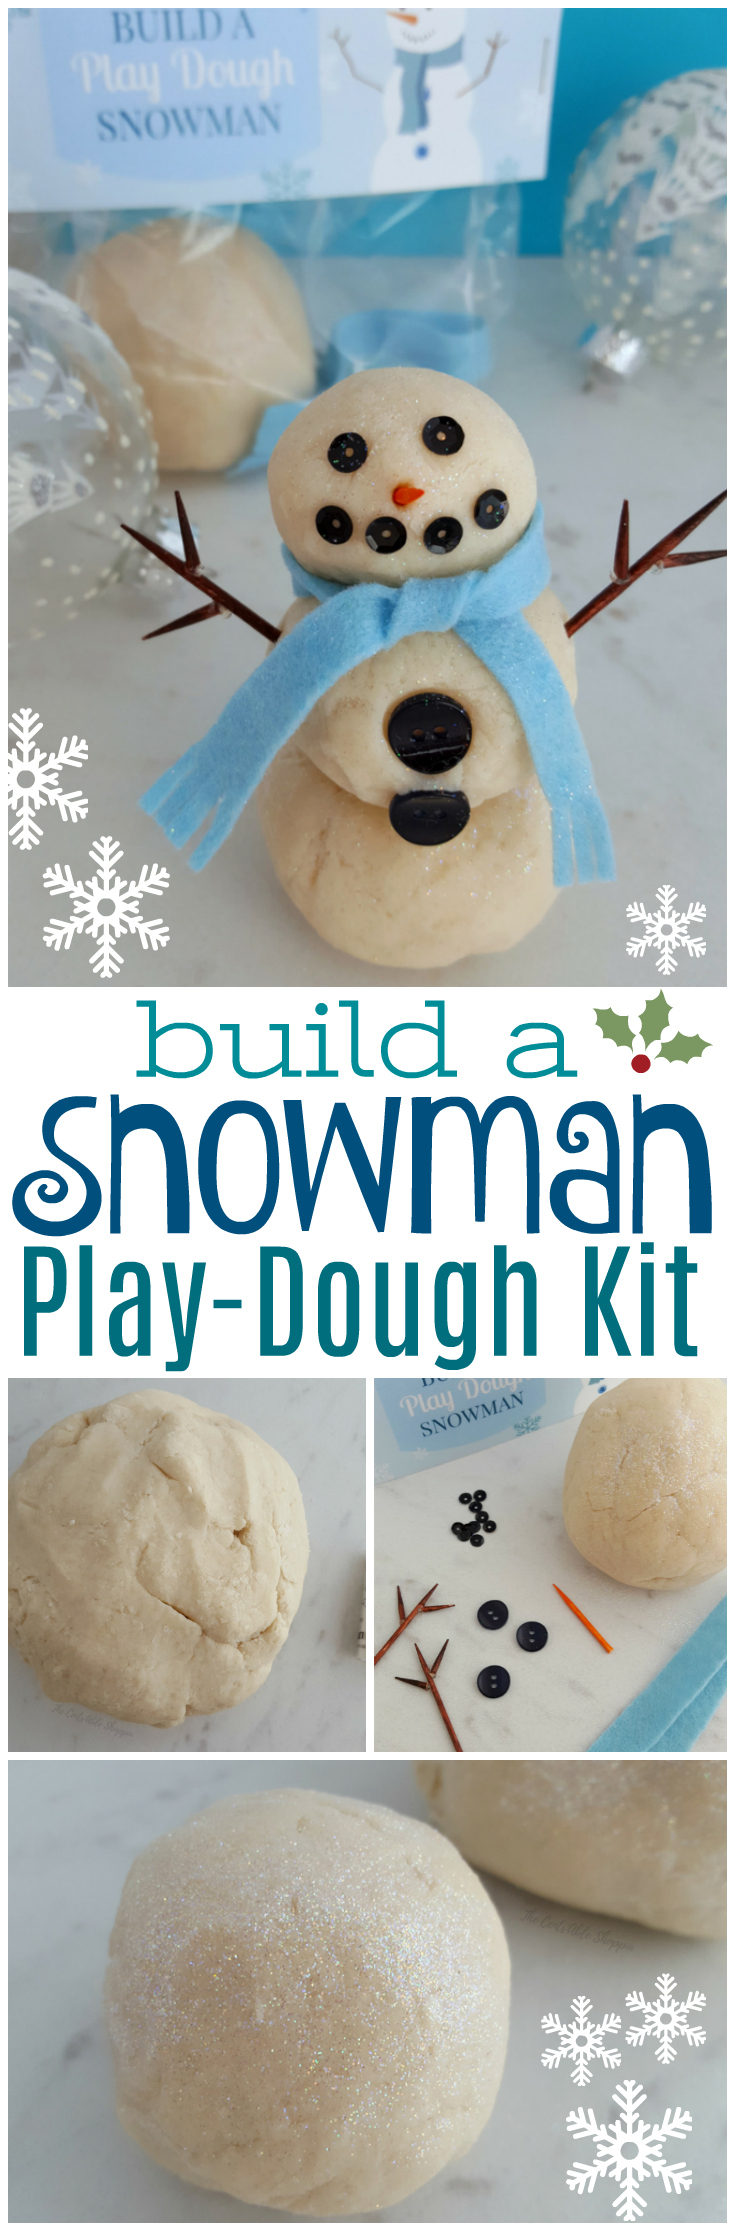 This Build a Snowman Play-Dough Kit is the perfect activity for kids of all ages!  It includes an easy, white, sparkly play-dough recipe, printable label, and all the materials needed to allow you to make your own kit for your children, their classmates, or even family members this holiday season! #snowman #craft #christmascraft #kids #playdough